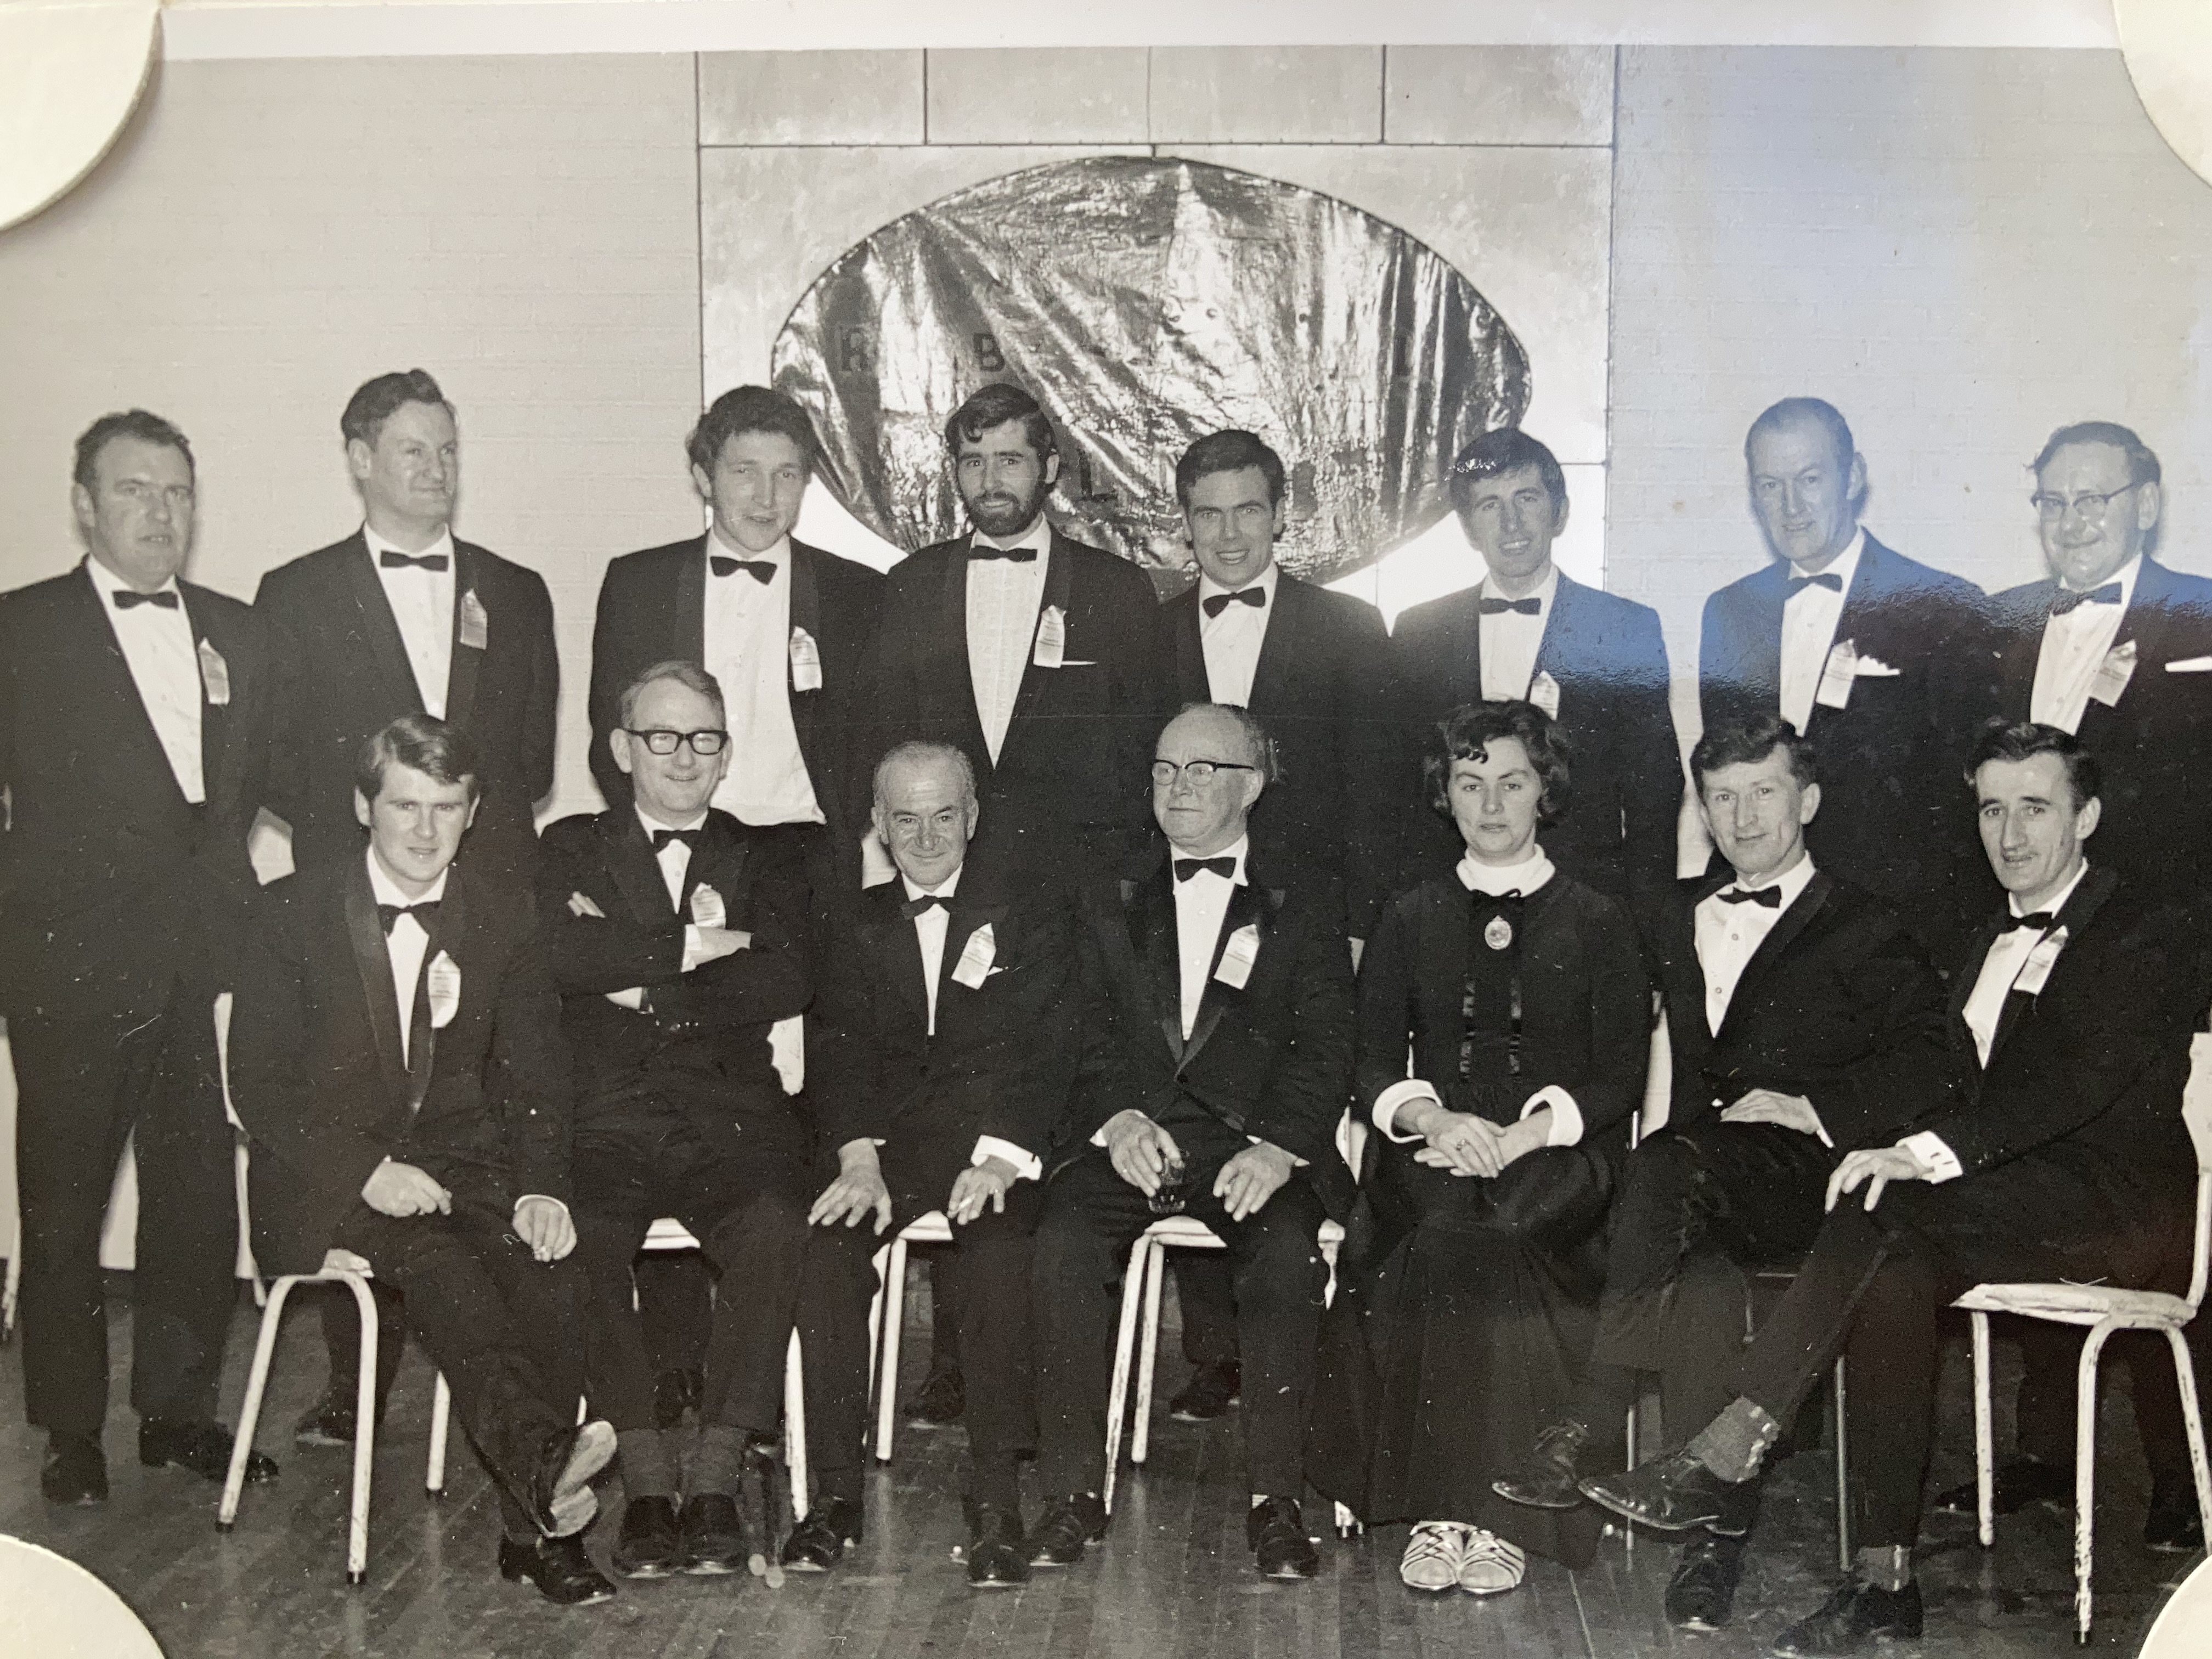 1968 Club Office and Committee at Annual Dinner in Dooly's Hotel